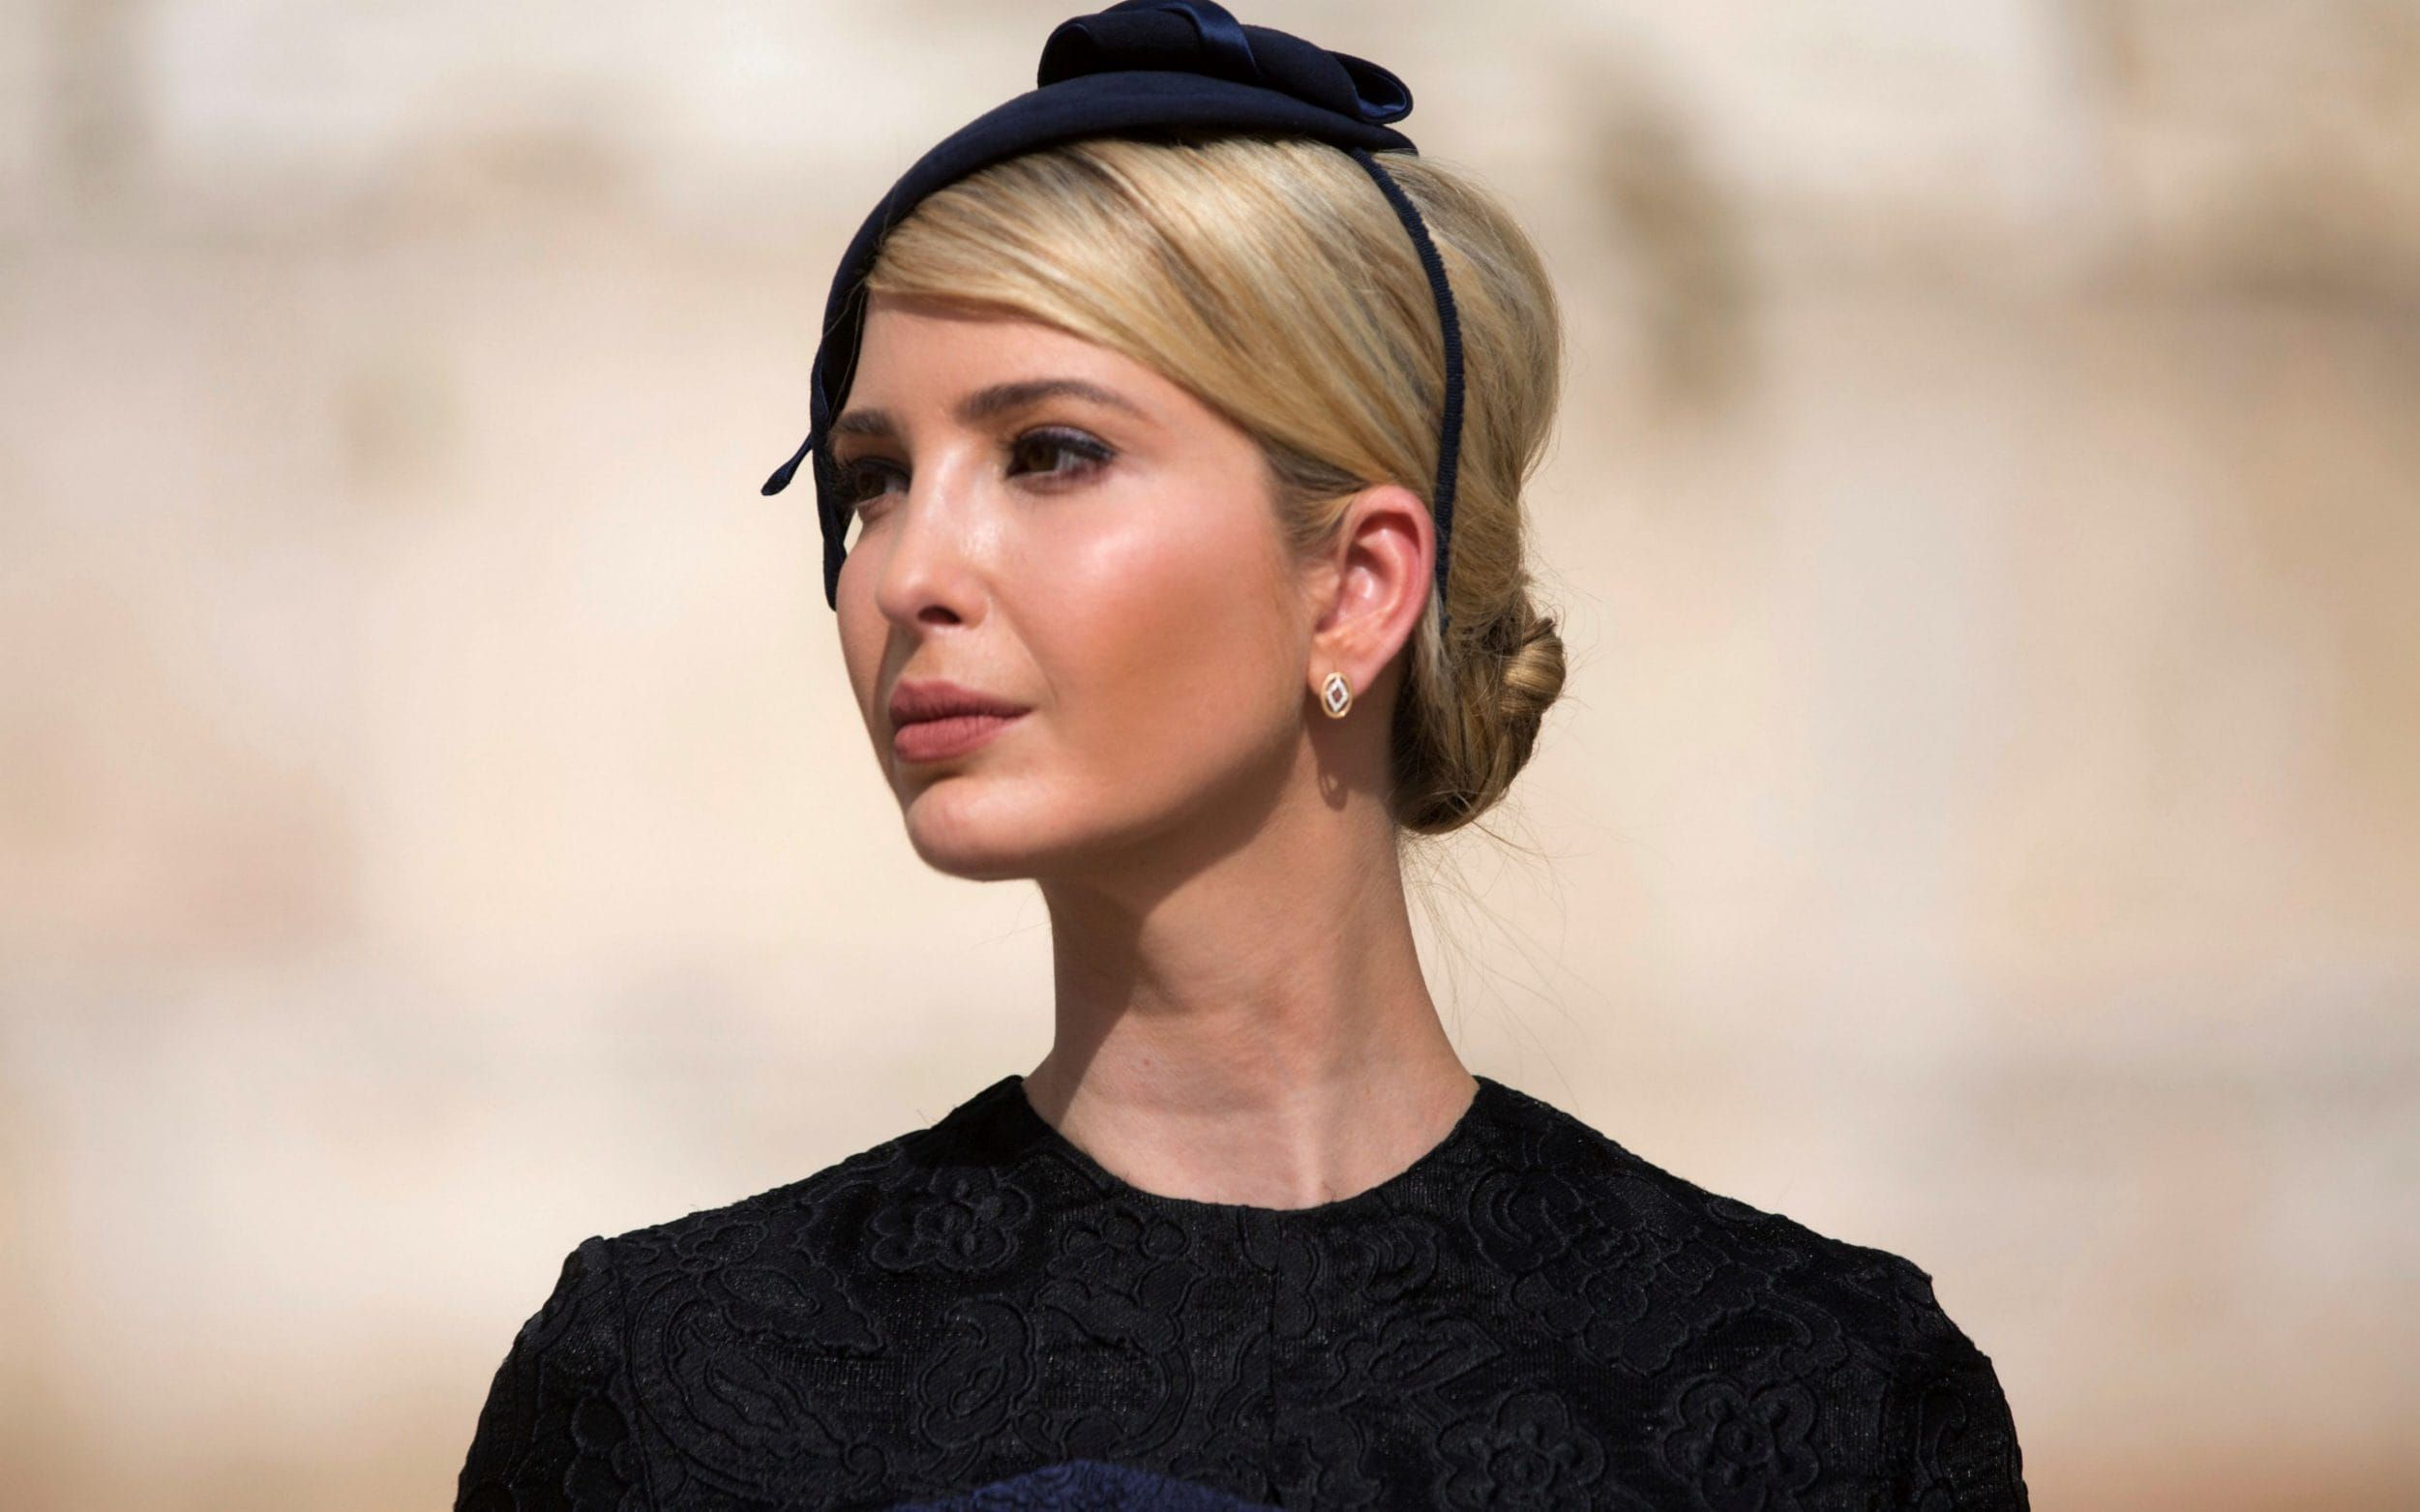 Lifestyle advice according to Ivanka Trump: champagne popsicles, massages and rainbow pizza #champagnepopsicles Lifestyle advice according to Ivanka Trump: champagne popsicles, massages and rainbow pizza      sending staff members emails at night can make them feel pressured into replying and increase feelings of presenteeism #champagnepopsicles Lifestyle advice according to Ivanka Trump: champagne popsicles, massages and rainbow pizza #champagnepopsicles Lifestyle advice according to Ivanka Tru #champagnepopsicles